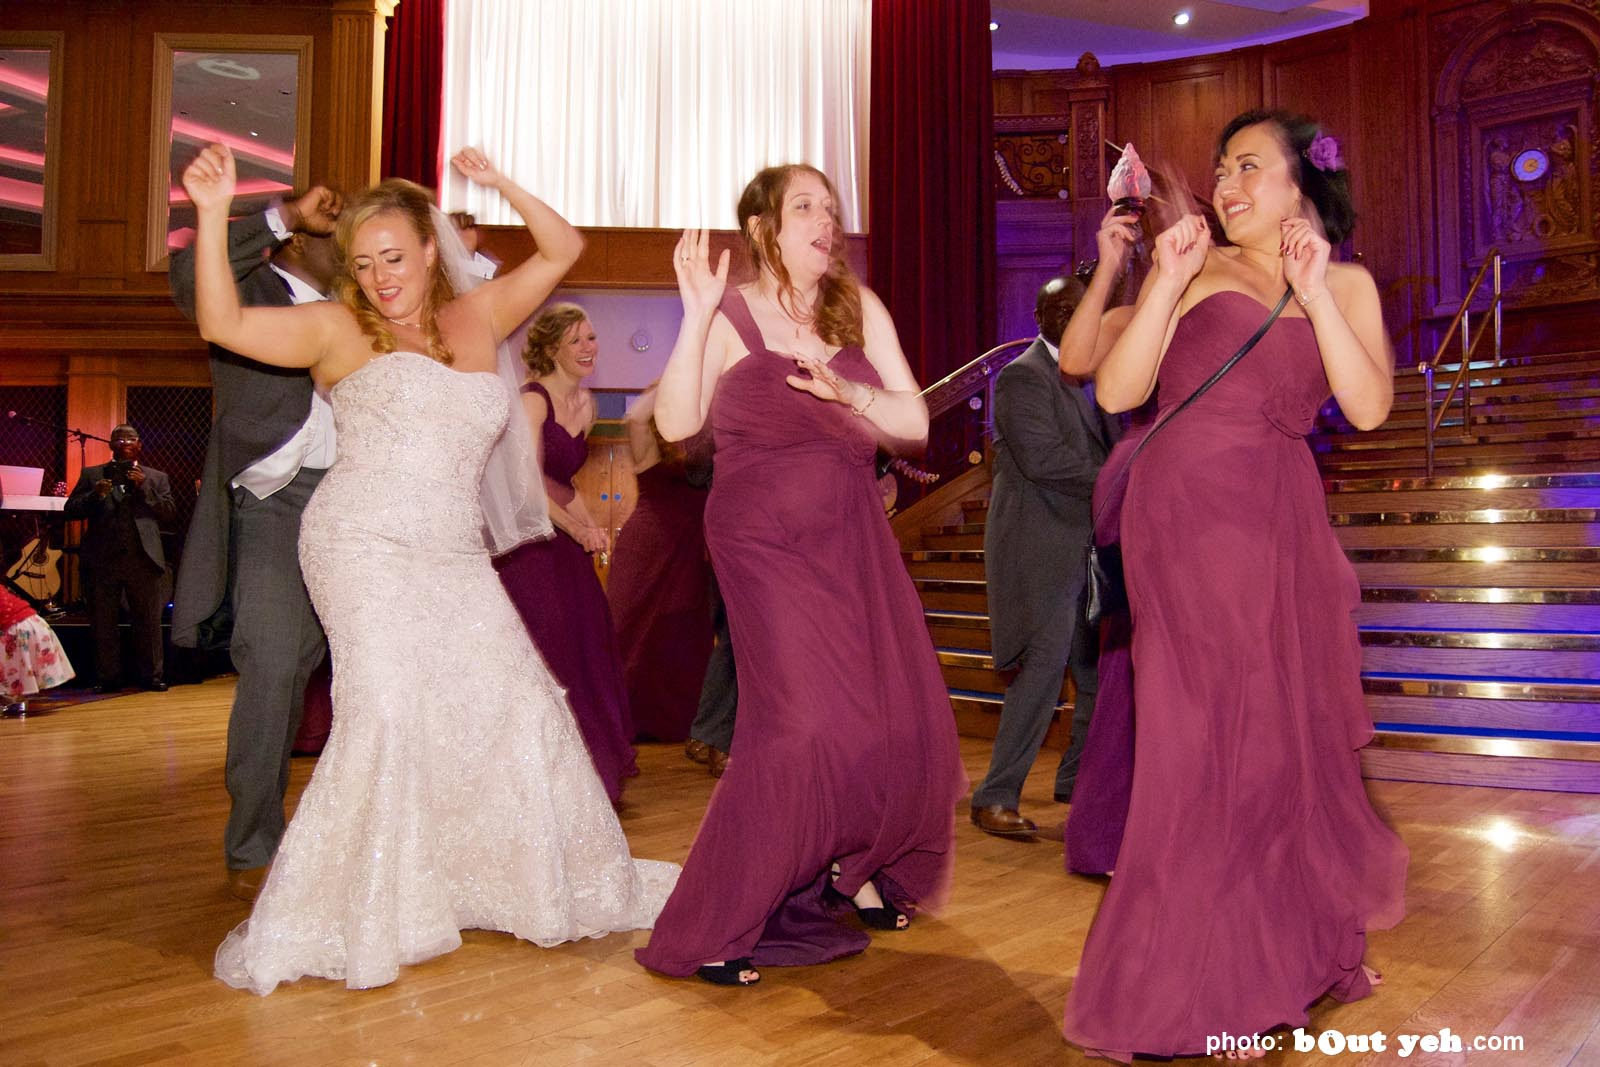 Paul and Emma's wedding photographed by Bout Yeh wedding photographers and video services Belfast and Northern Ireland. Photo 5947